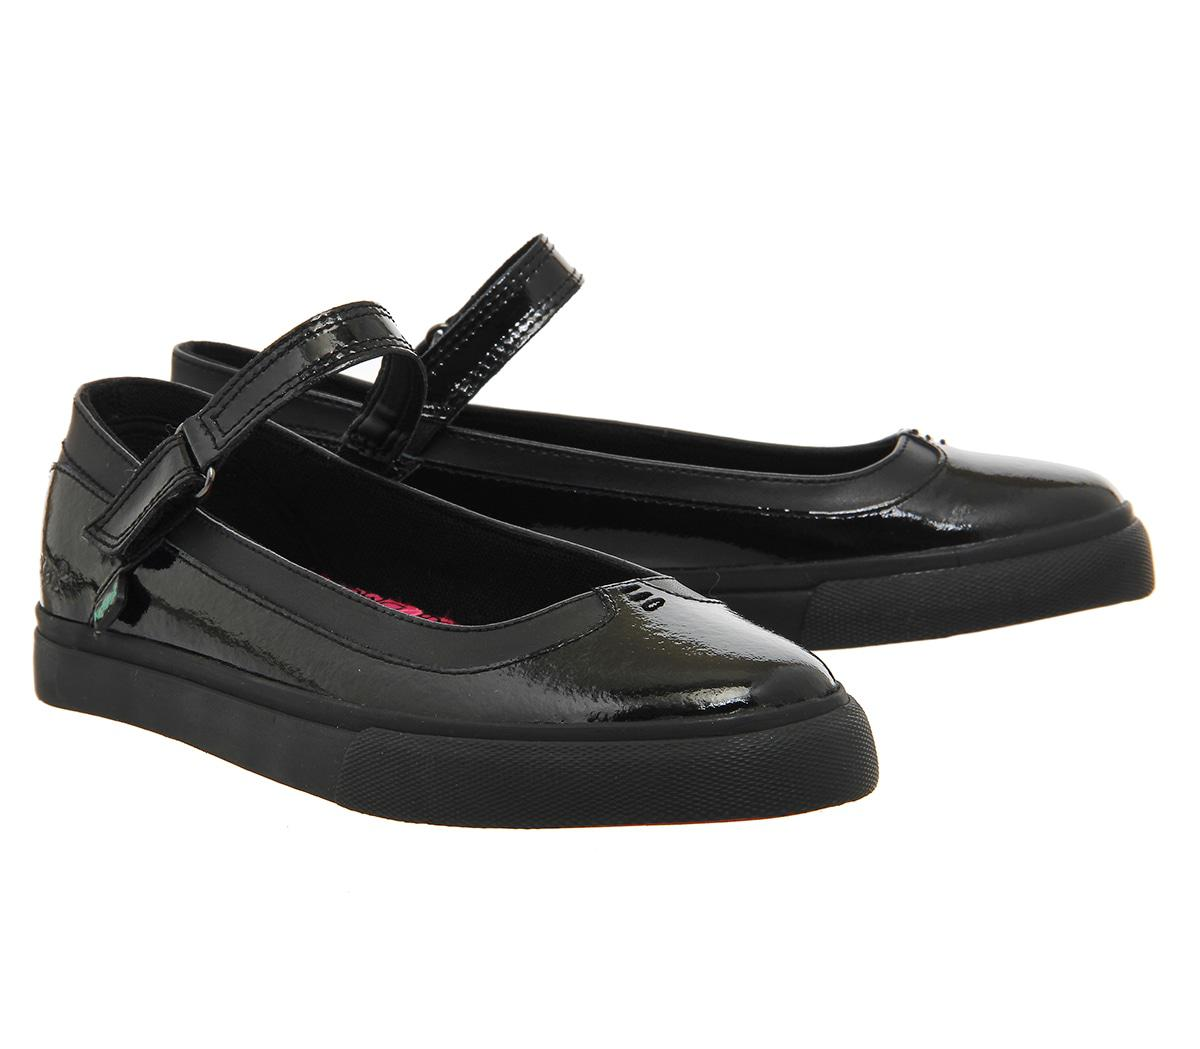 Kickers Leather Tovni Mary Jane in